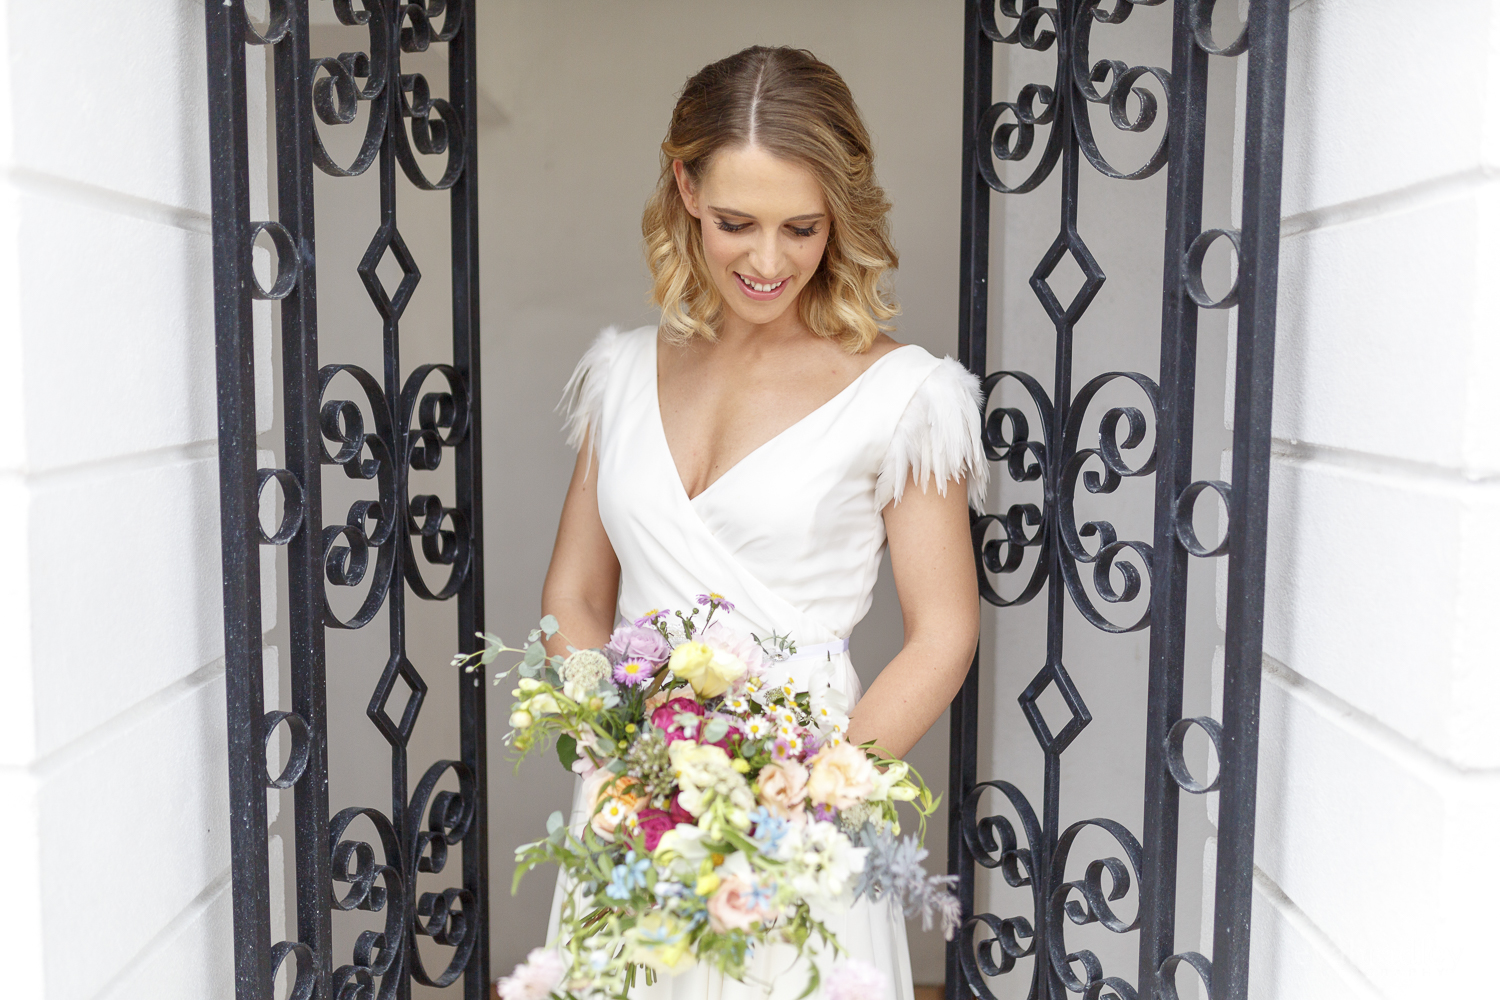 Beautiful bride Katy wears a wedding dress by Halfpenny London